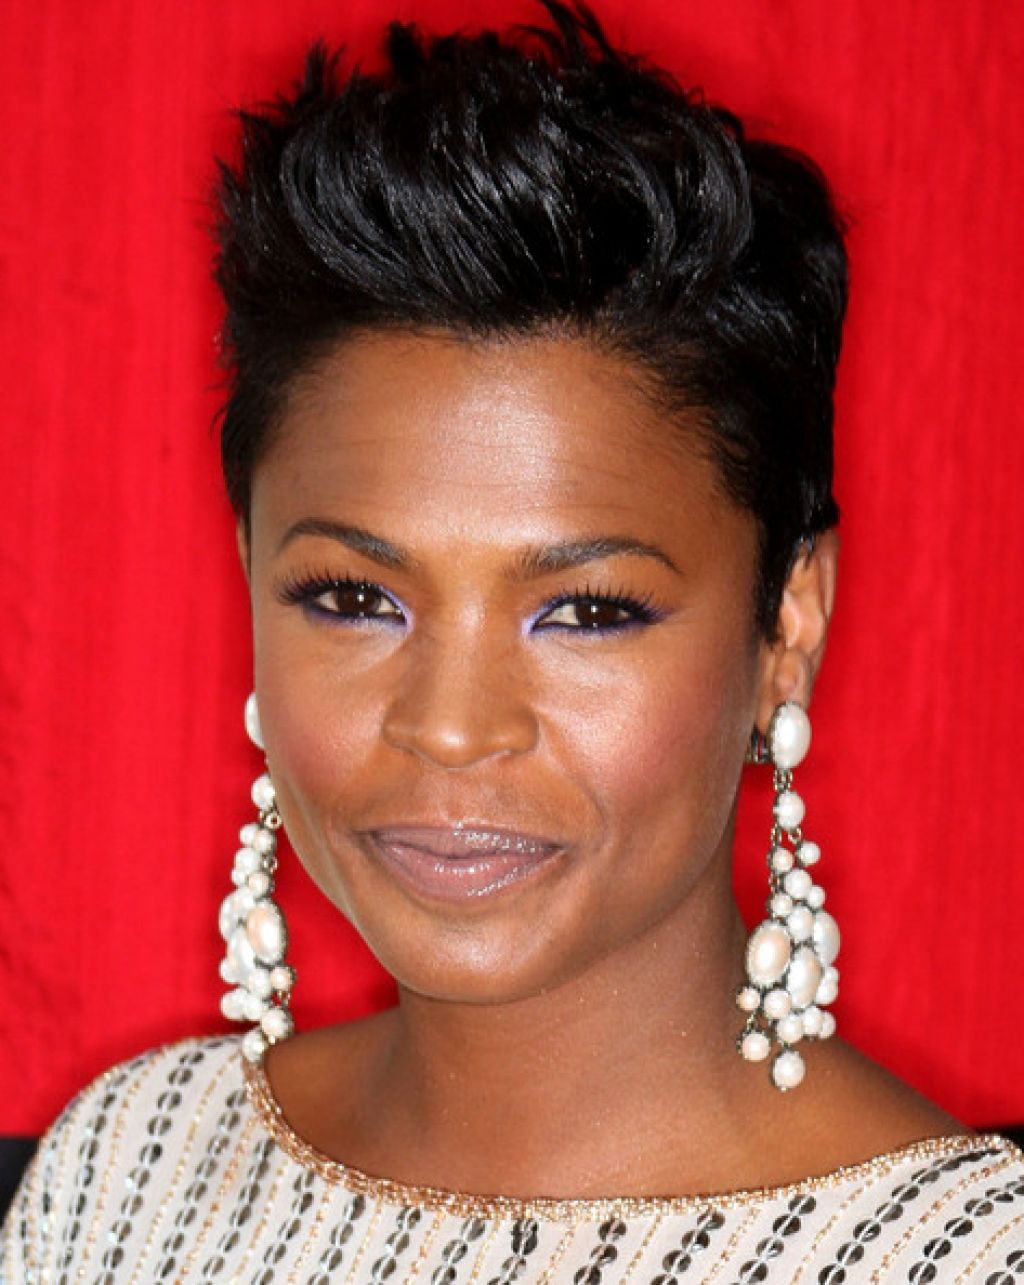 Best ideas about Short Black Girl Haircuts . Save or Pin 14 Short Hairstyles and Haircuts For Black Women of Class Now.